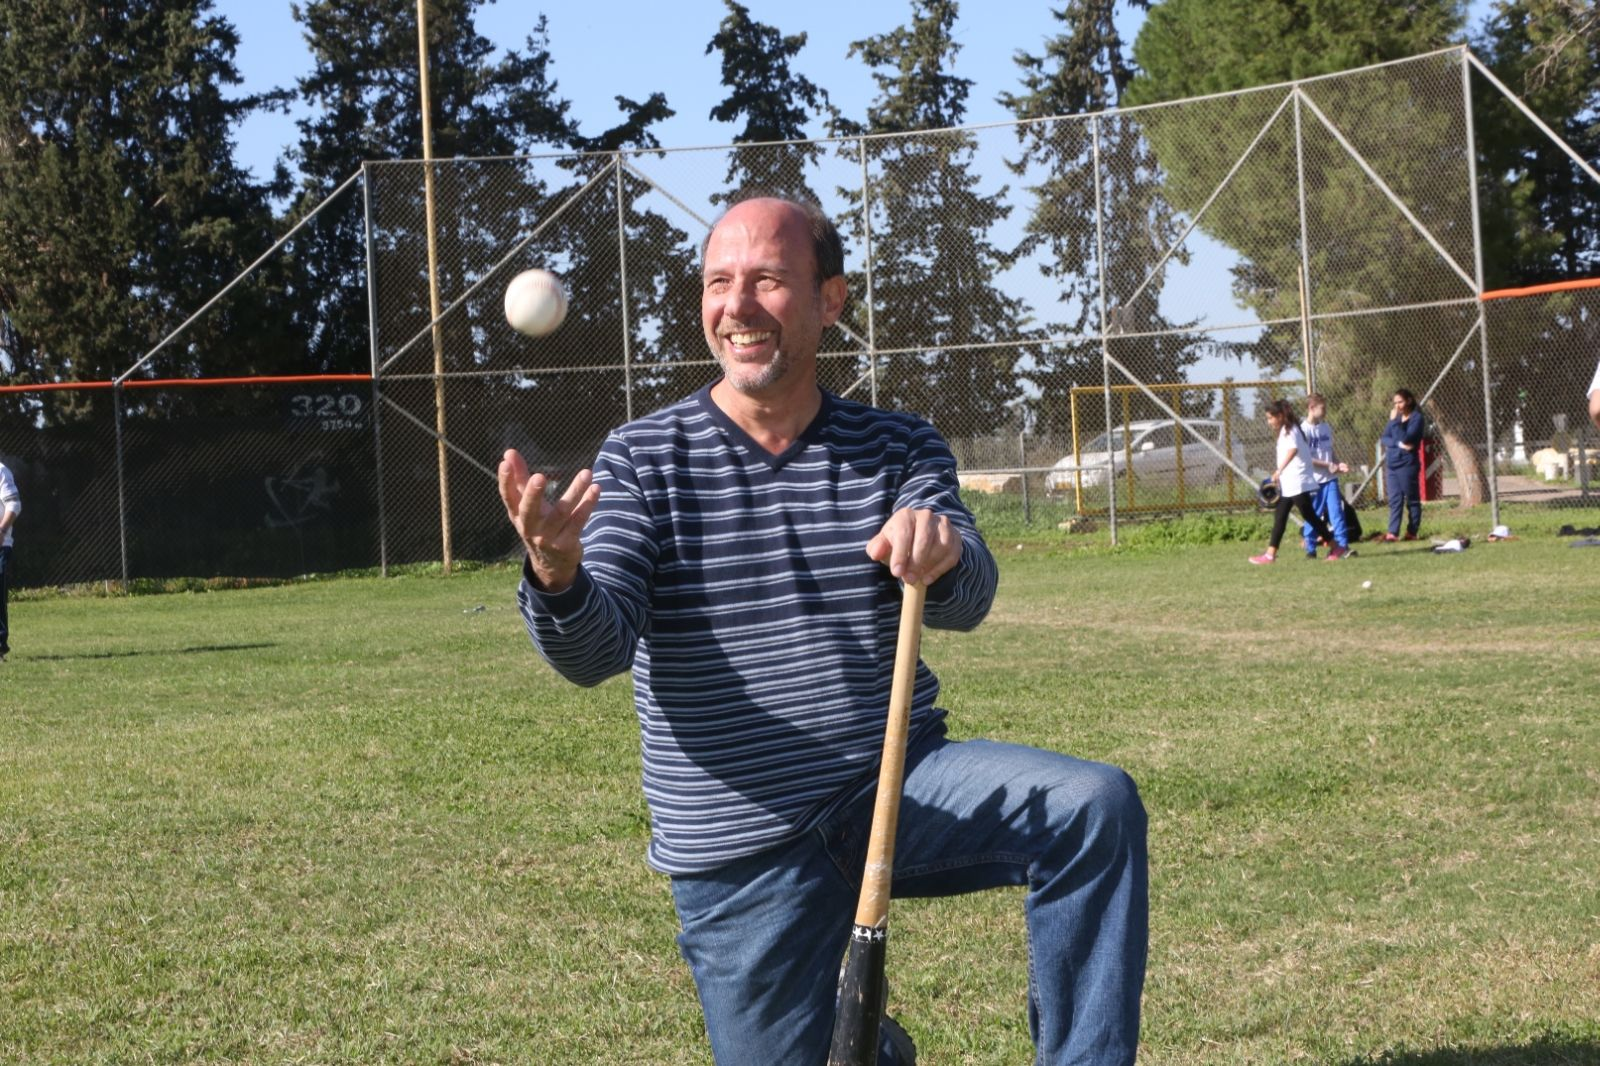 Peter Kurz, manager of the JNF's Project Baseball. Photo by Yossi Zamir/JNF